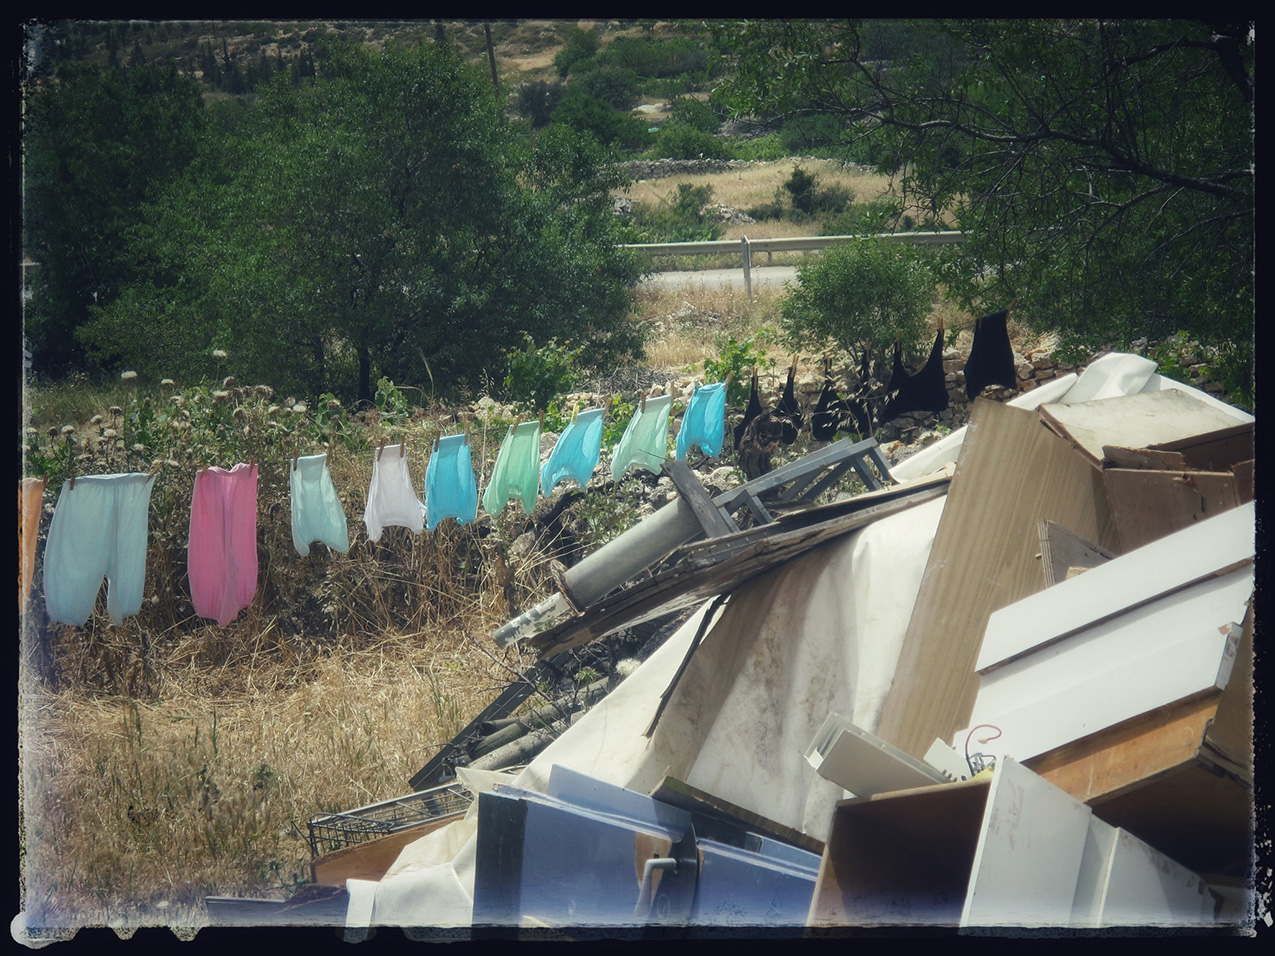 clothes hanging on a clothesline with a large pile of discarded furniture in the foreground